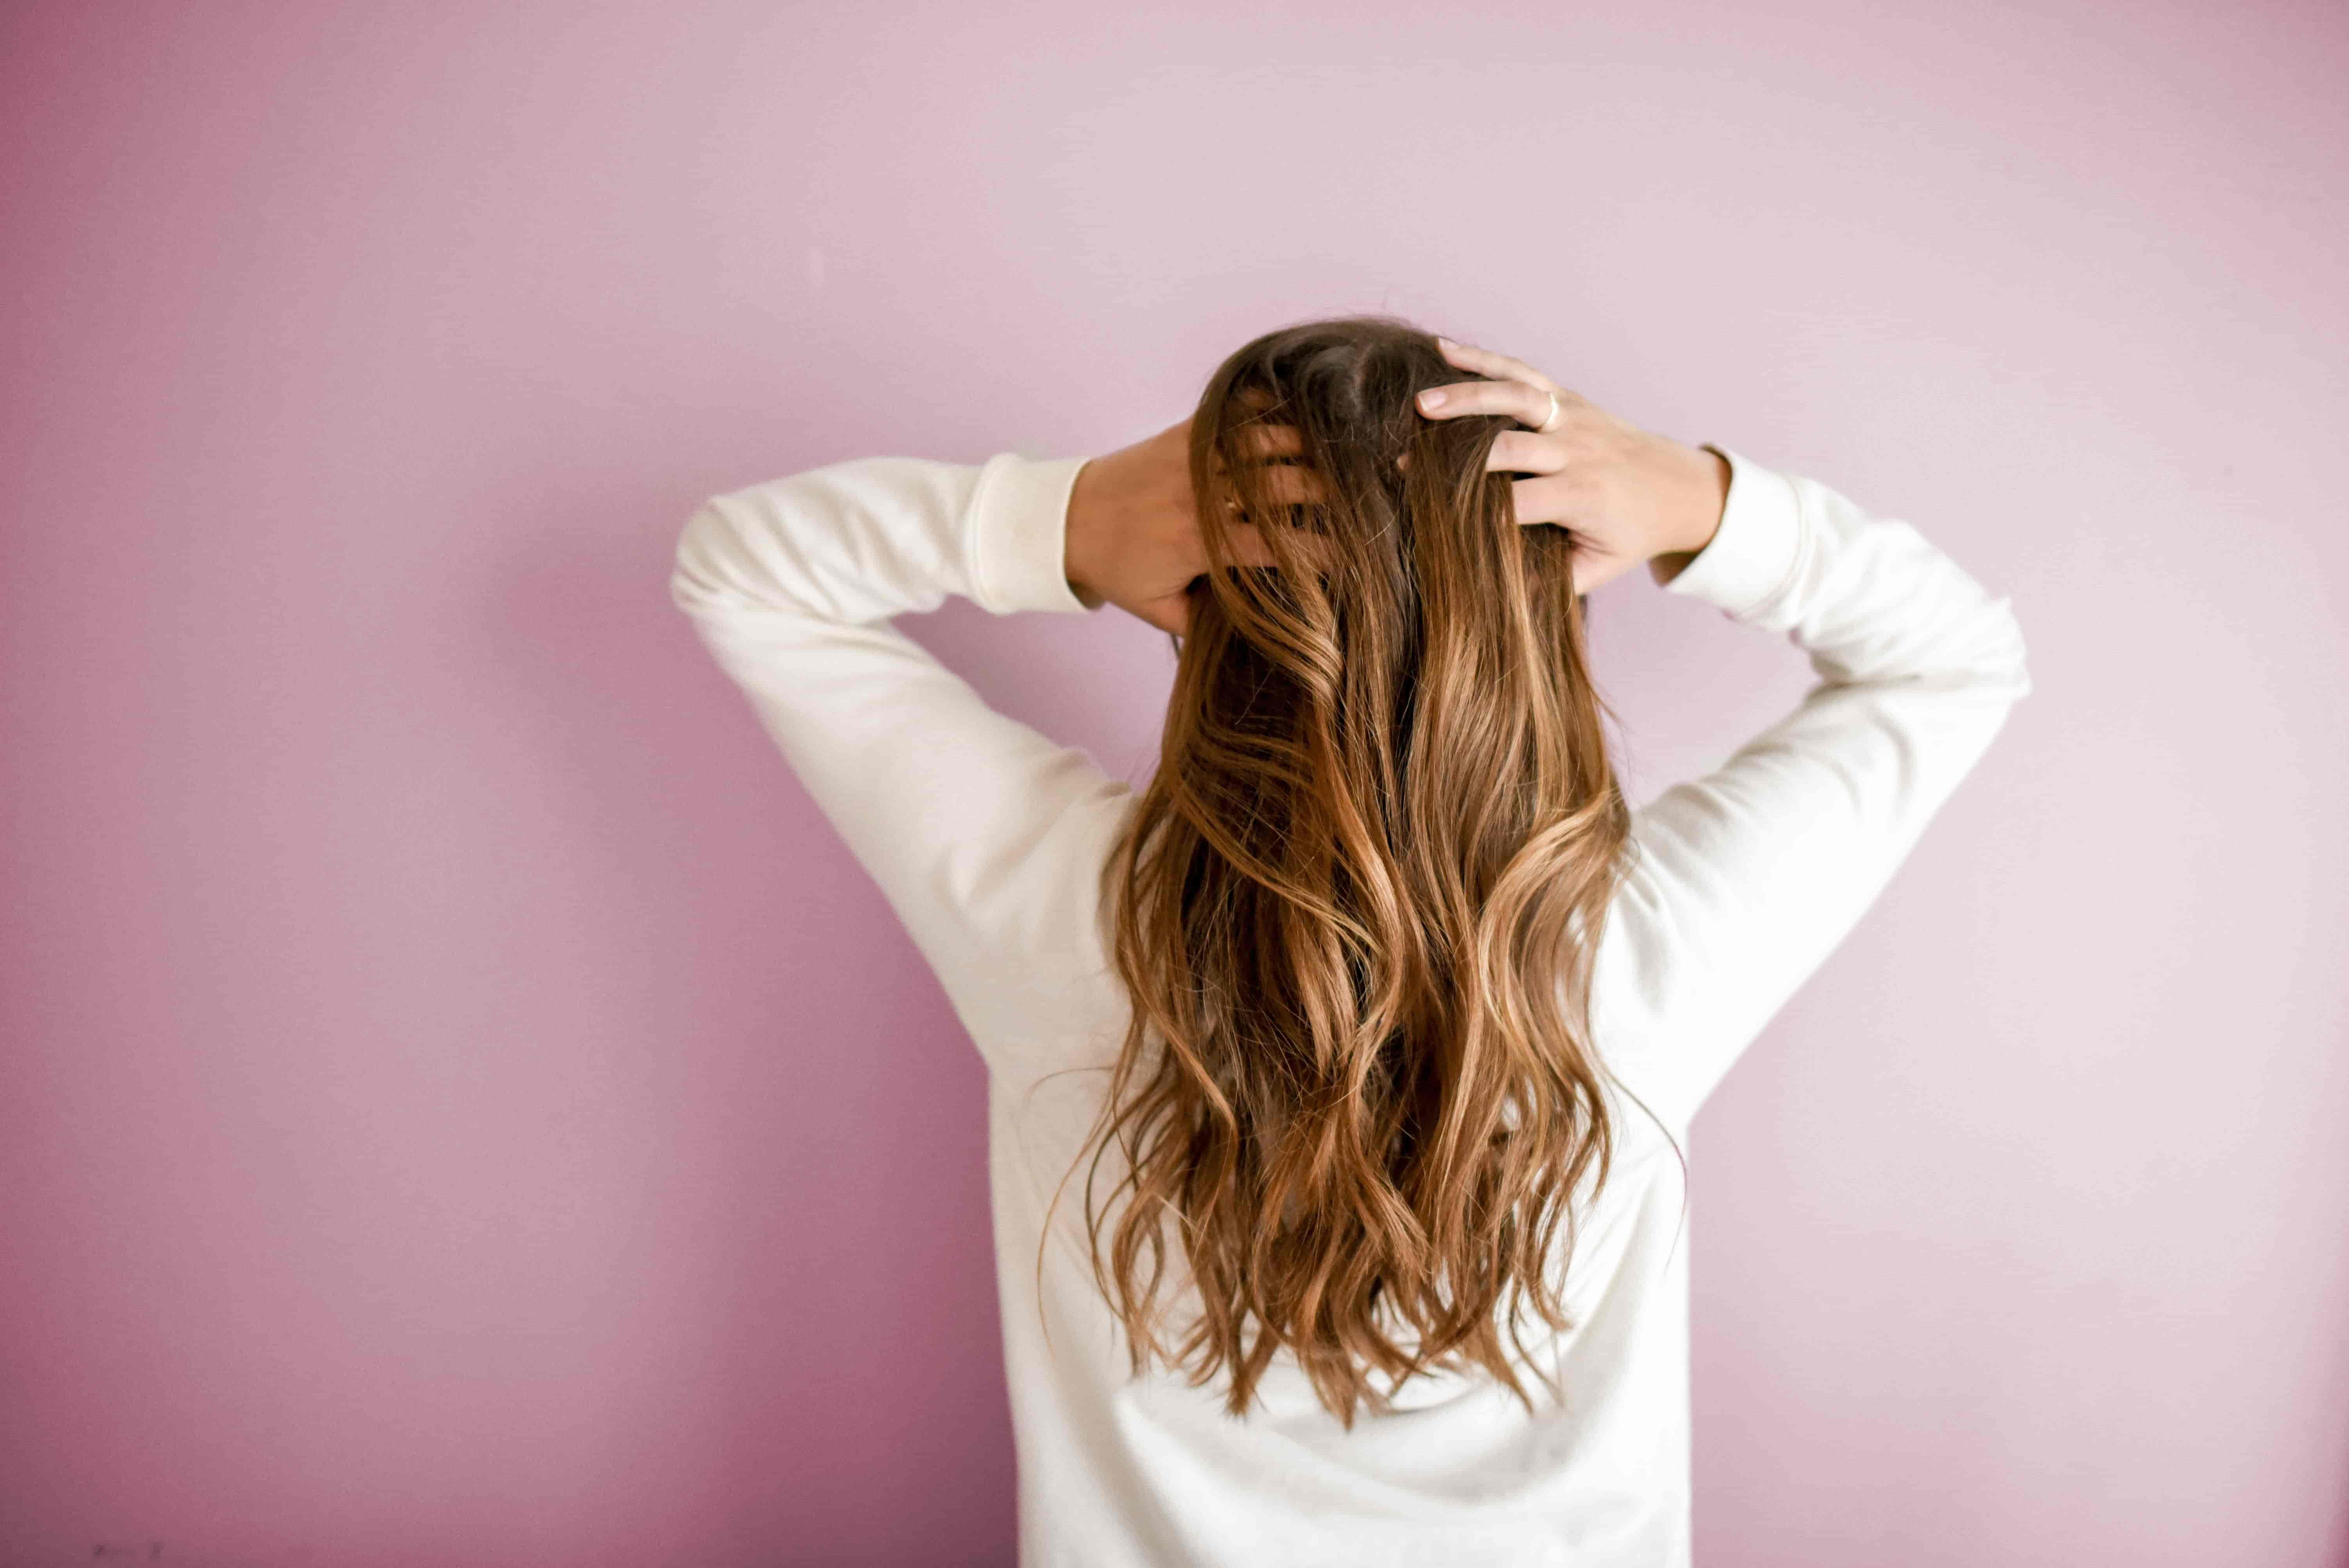 A woman in a cream jumper with long wavy brown hair, with her back towards the camera with both hands on her head on a pink background